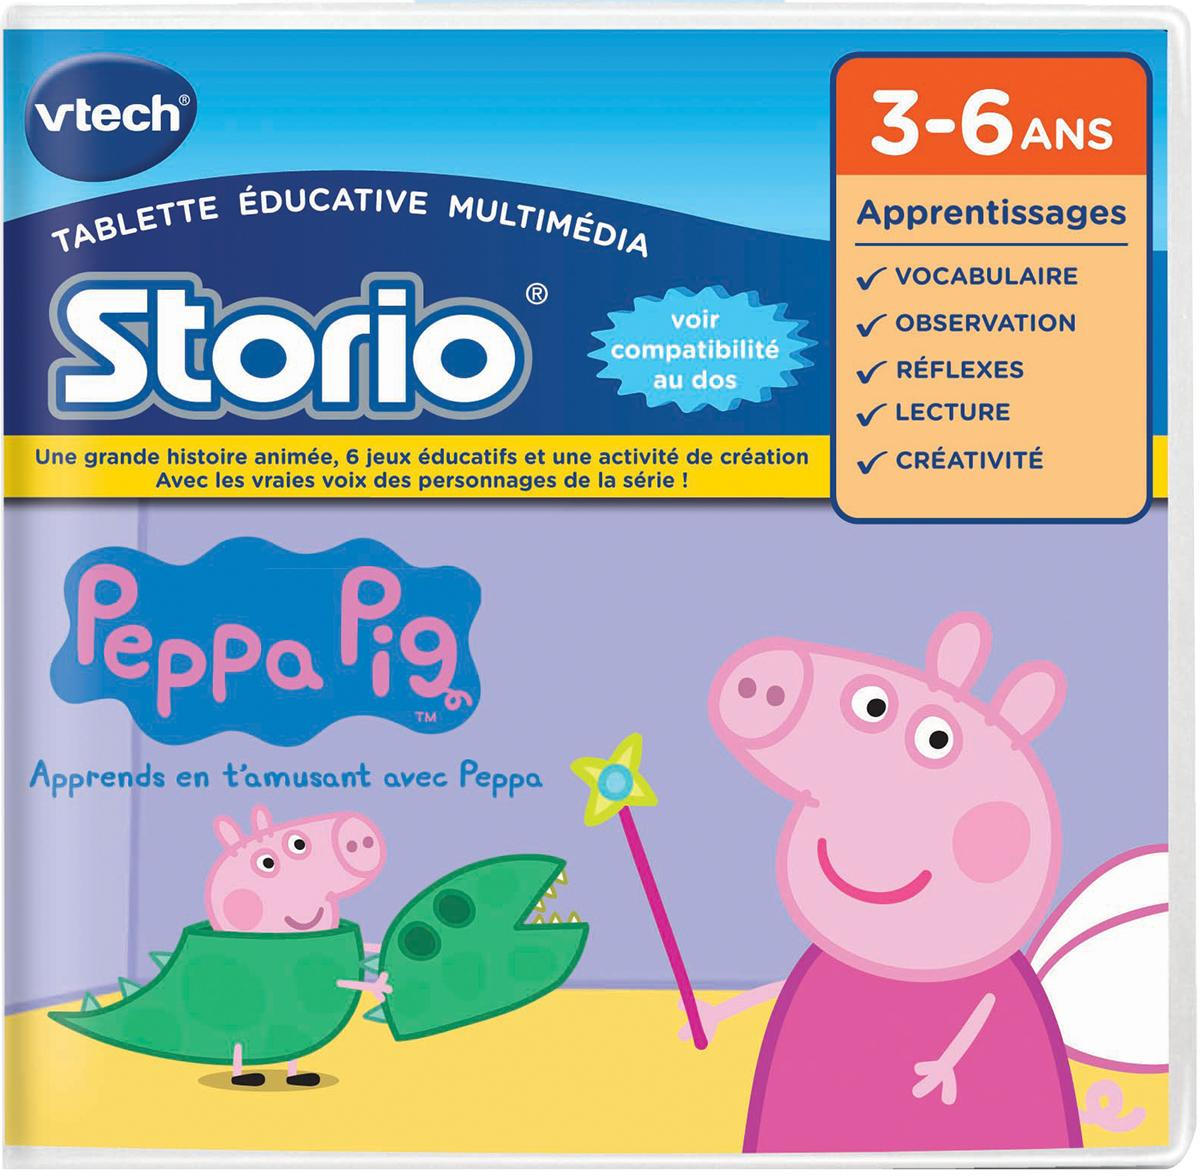 vtech 233405 jeu pour tablette hd storio peppa pig jeux et jouets. Black Bedroom Furniture Sets. Home Design Ideas